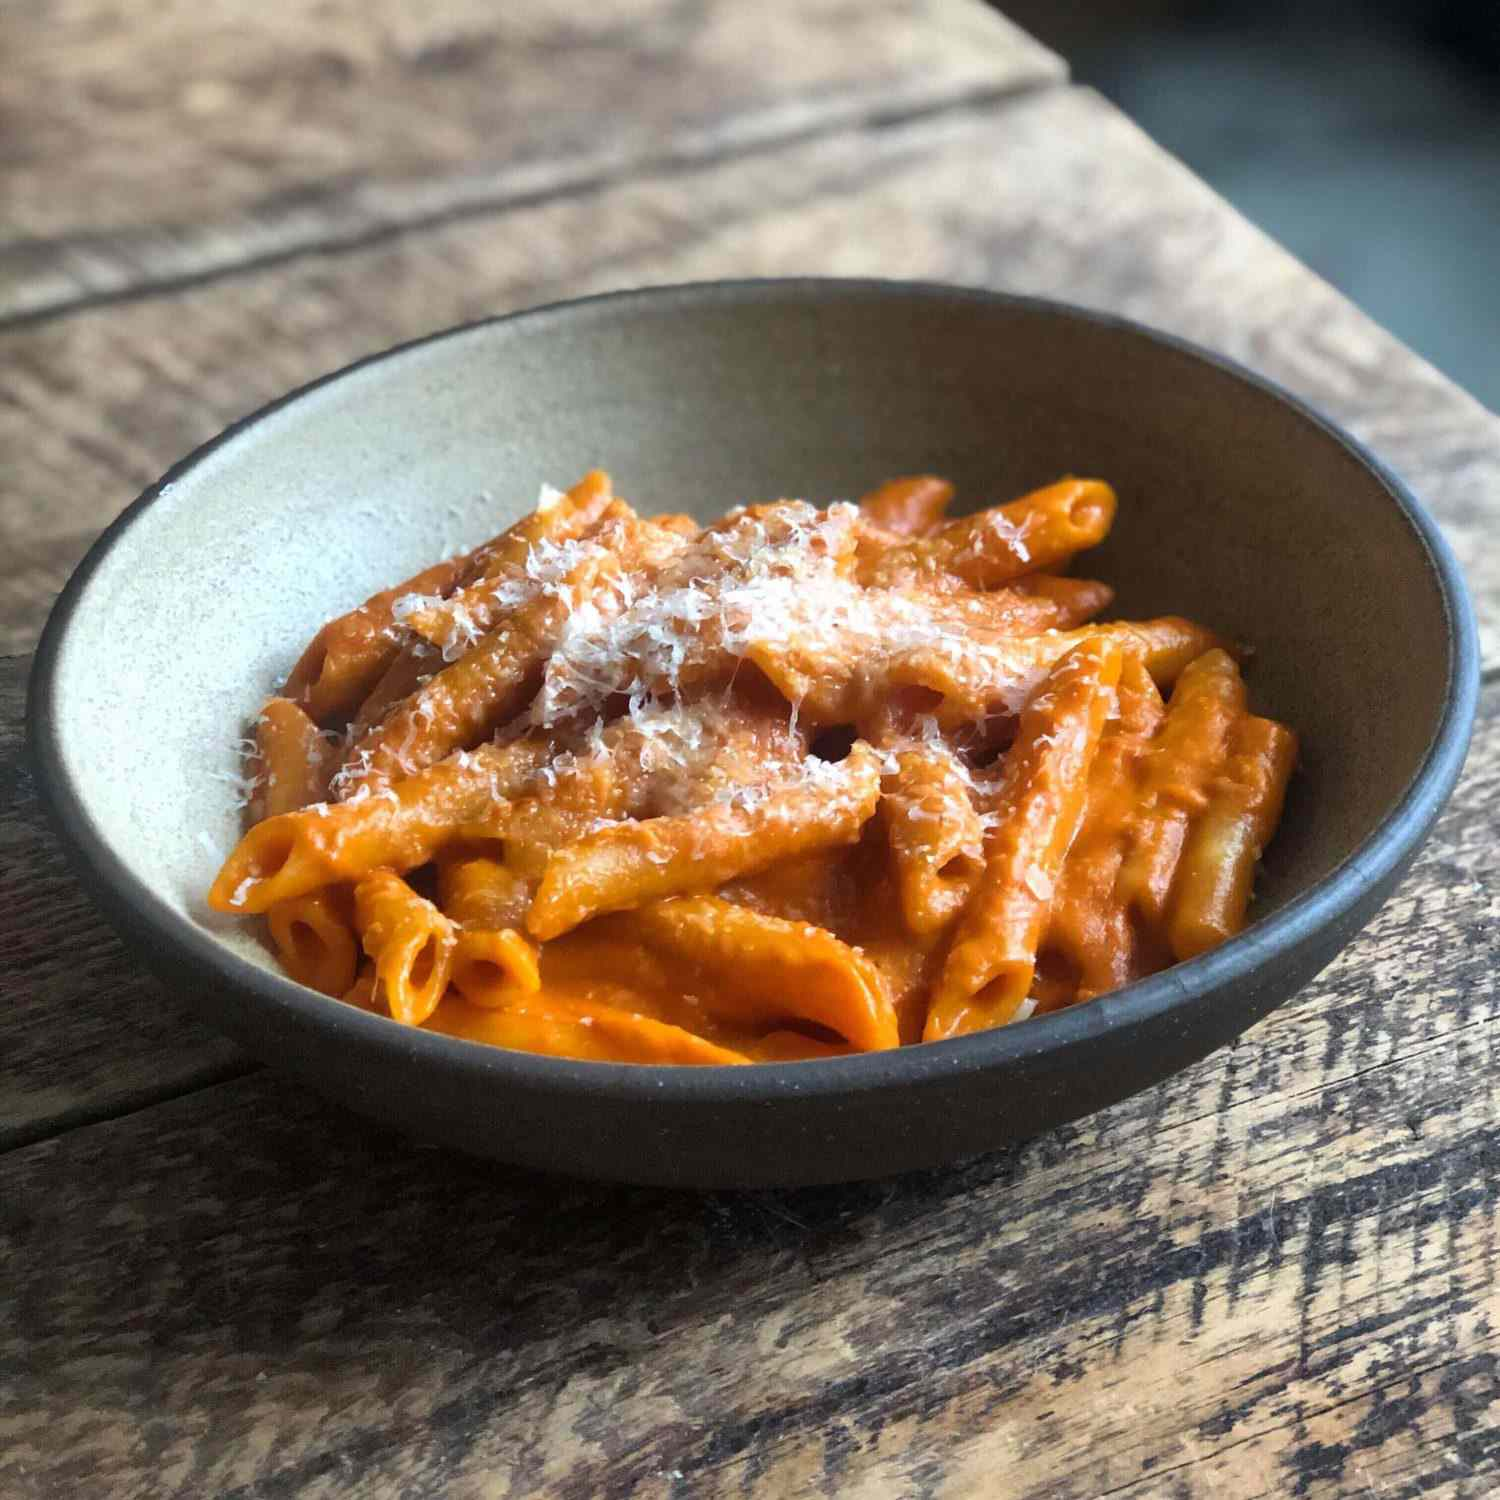 Bowl of penne with vodka sauce